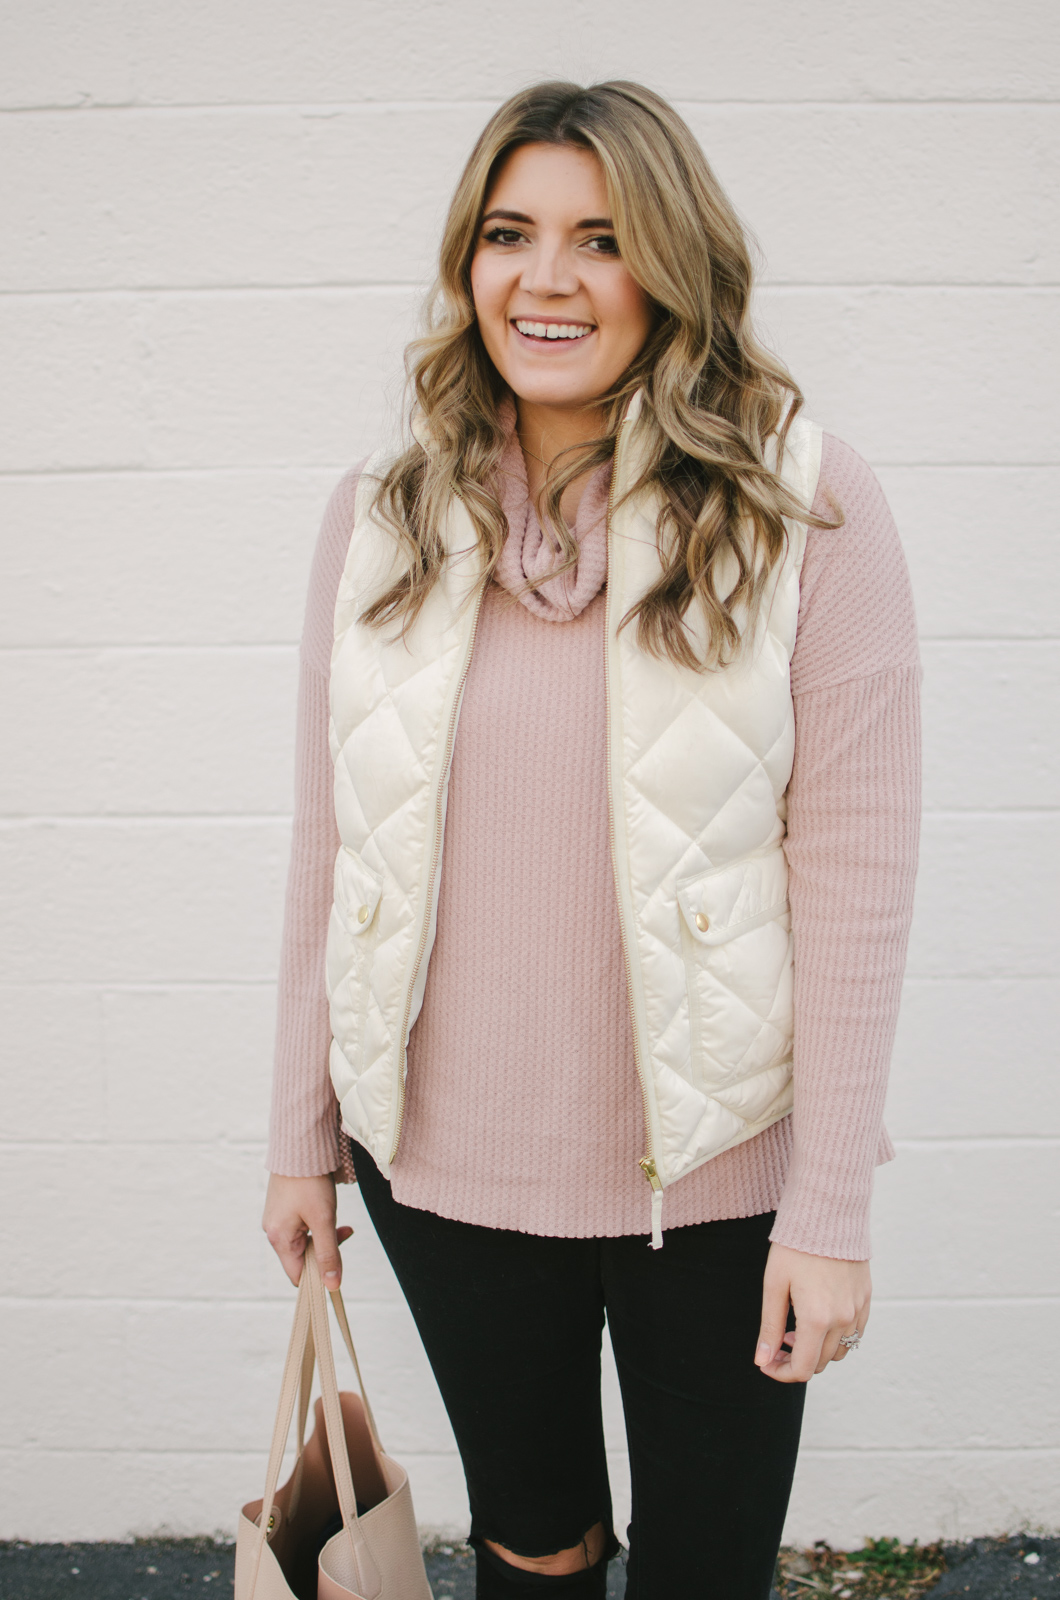 puffer vest outfit - how wear a white puffer vest outfit | shop this look or see more winter outfits at bylaurenm.com!